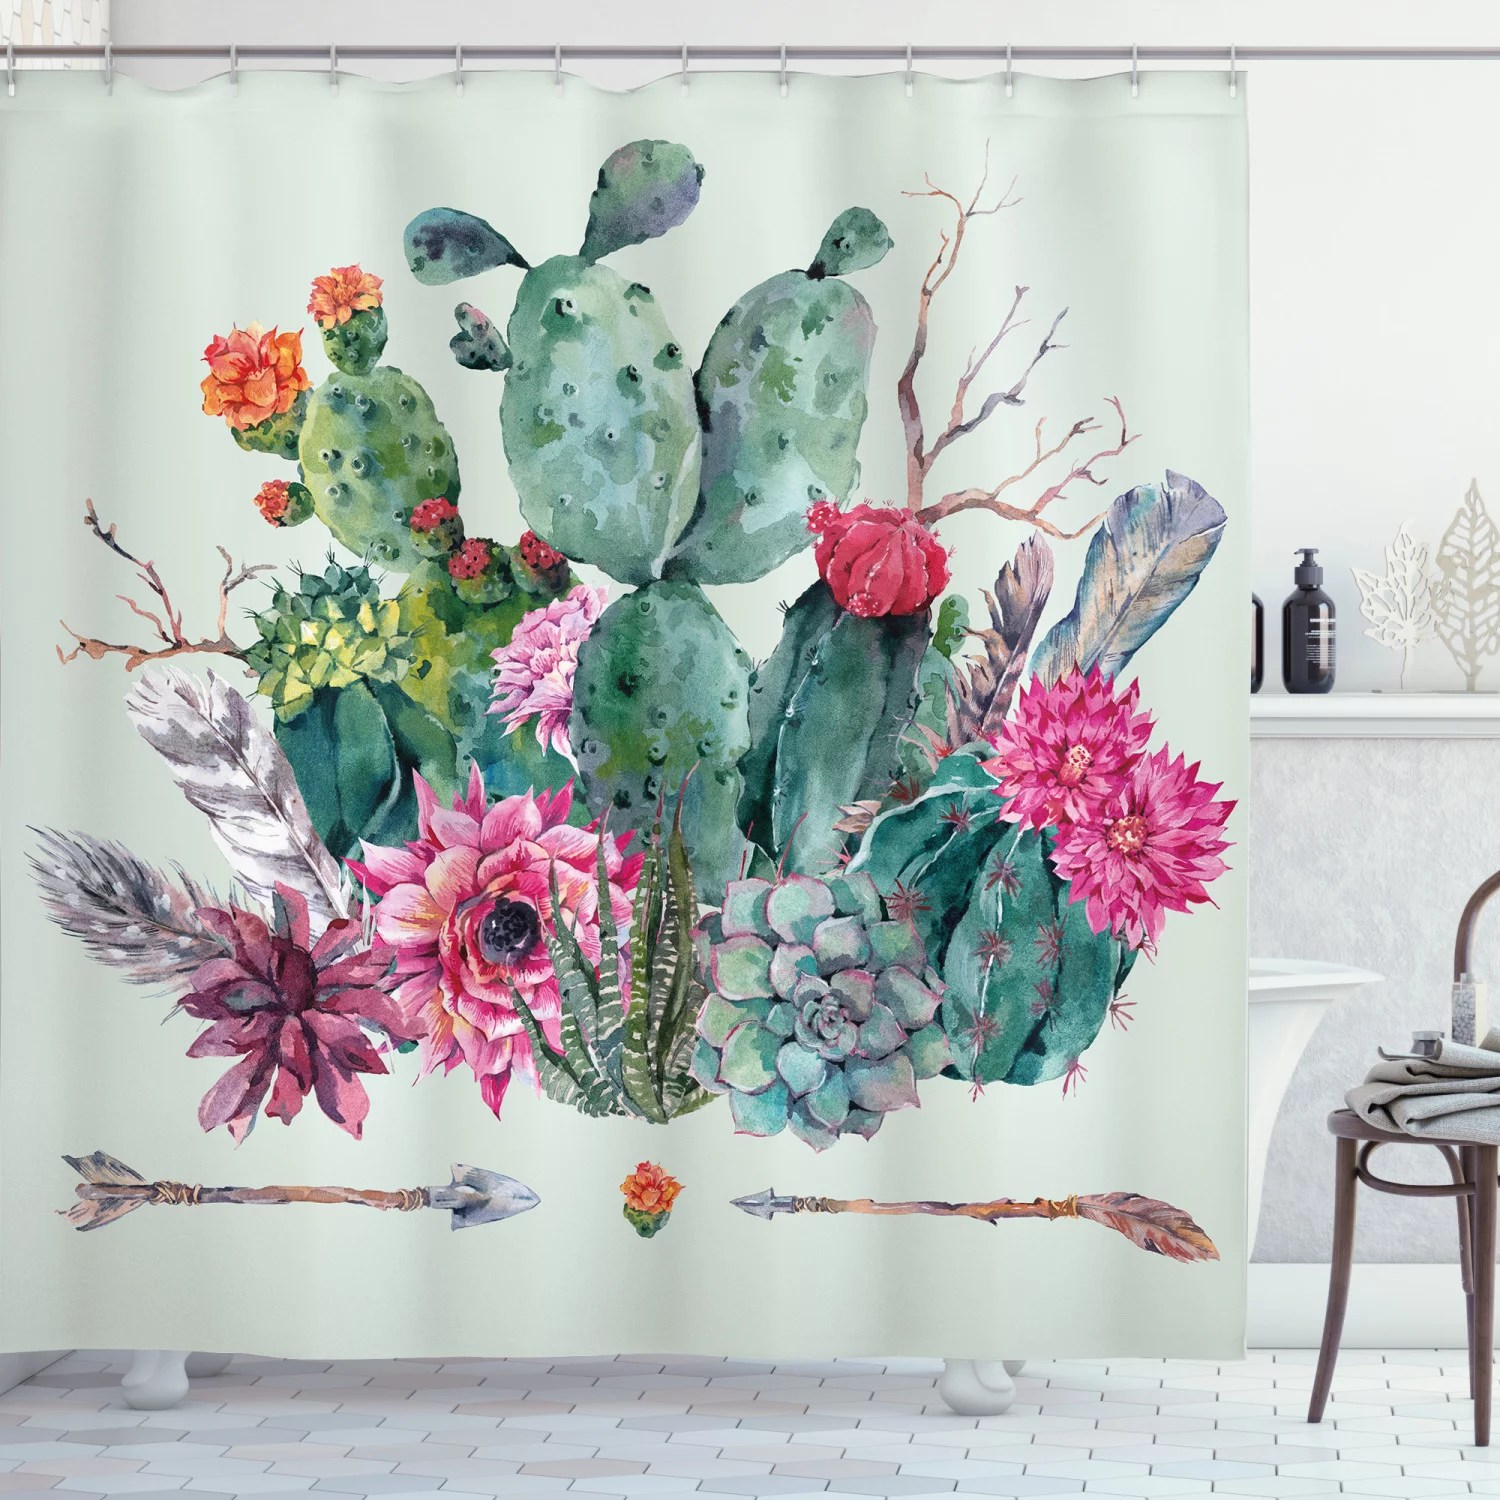 cactus shower curtain spring garden with boho style bouquet of thorny plants blossoms arrows feathers fabric bathroom set with hooks multicolor by